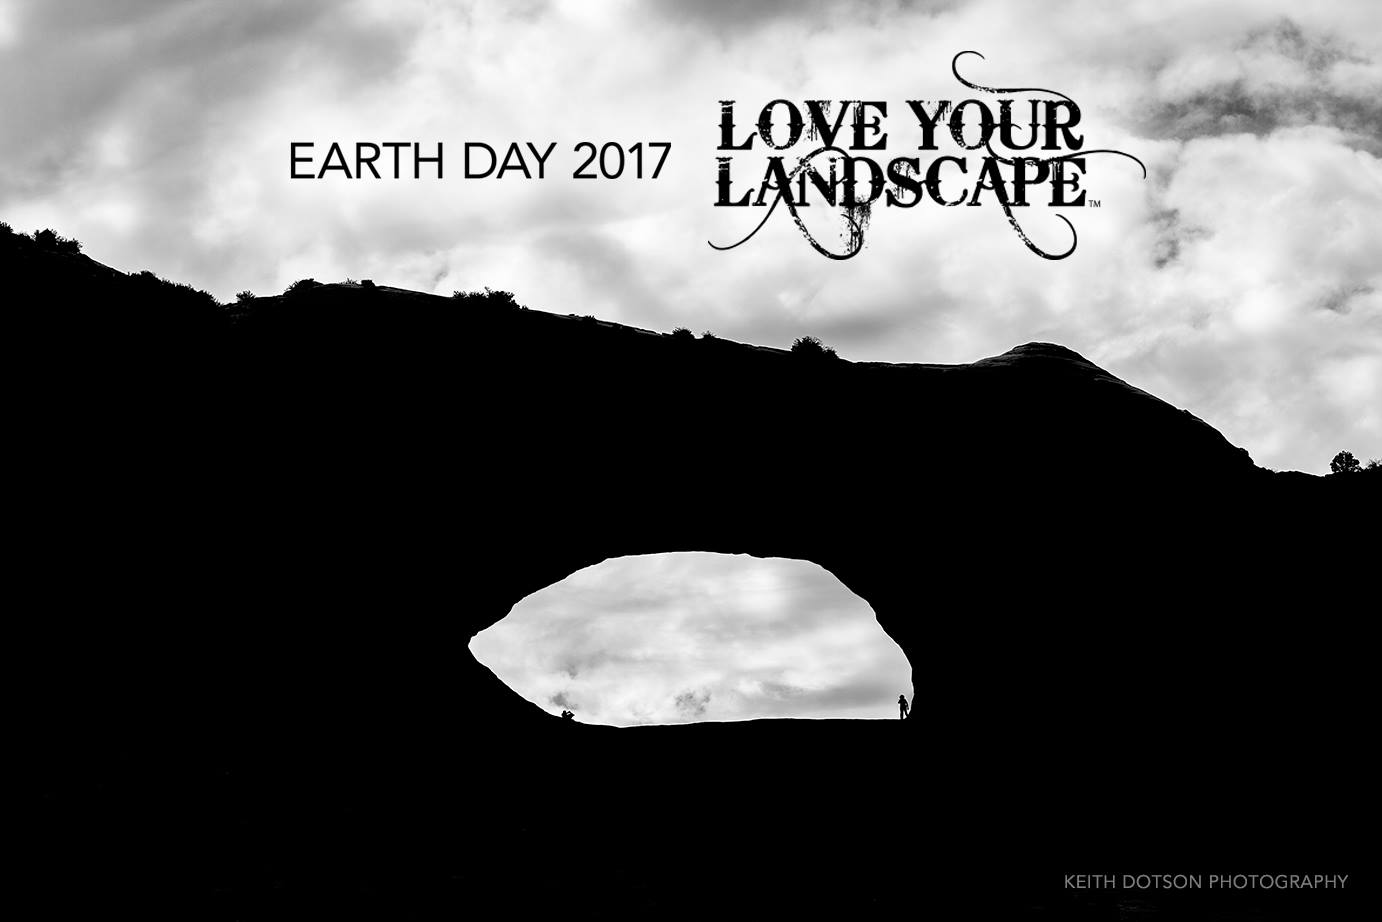 Just a friendly reminder to Love Your Landscape on this Earth Day